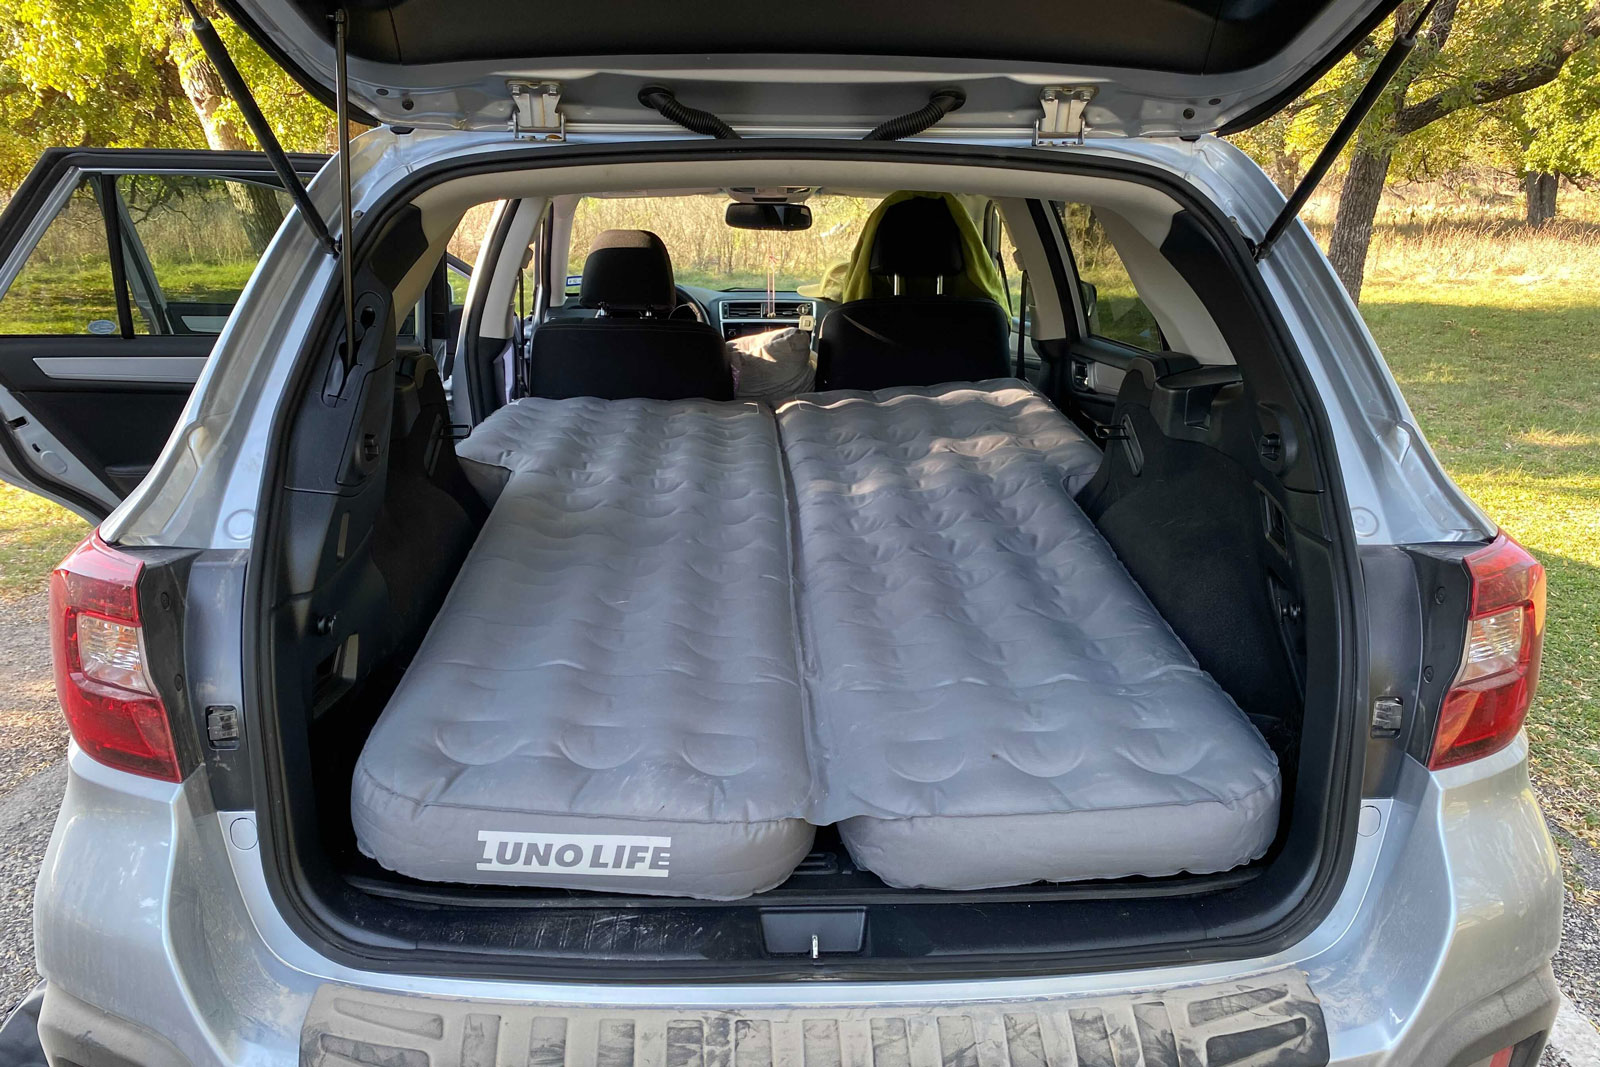 Subaru with Luno Air mattress 2.0